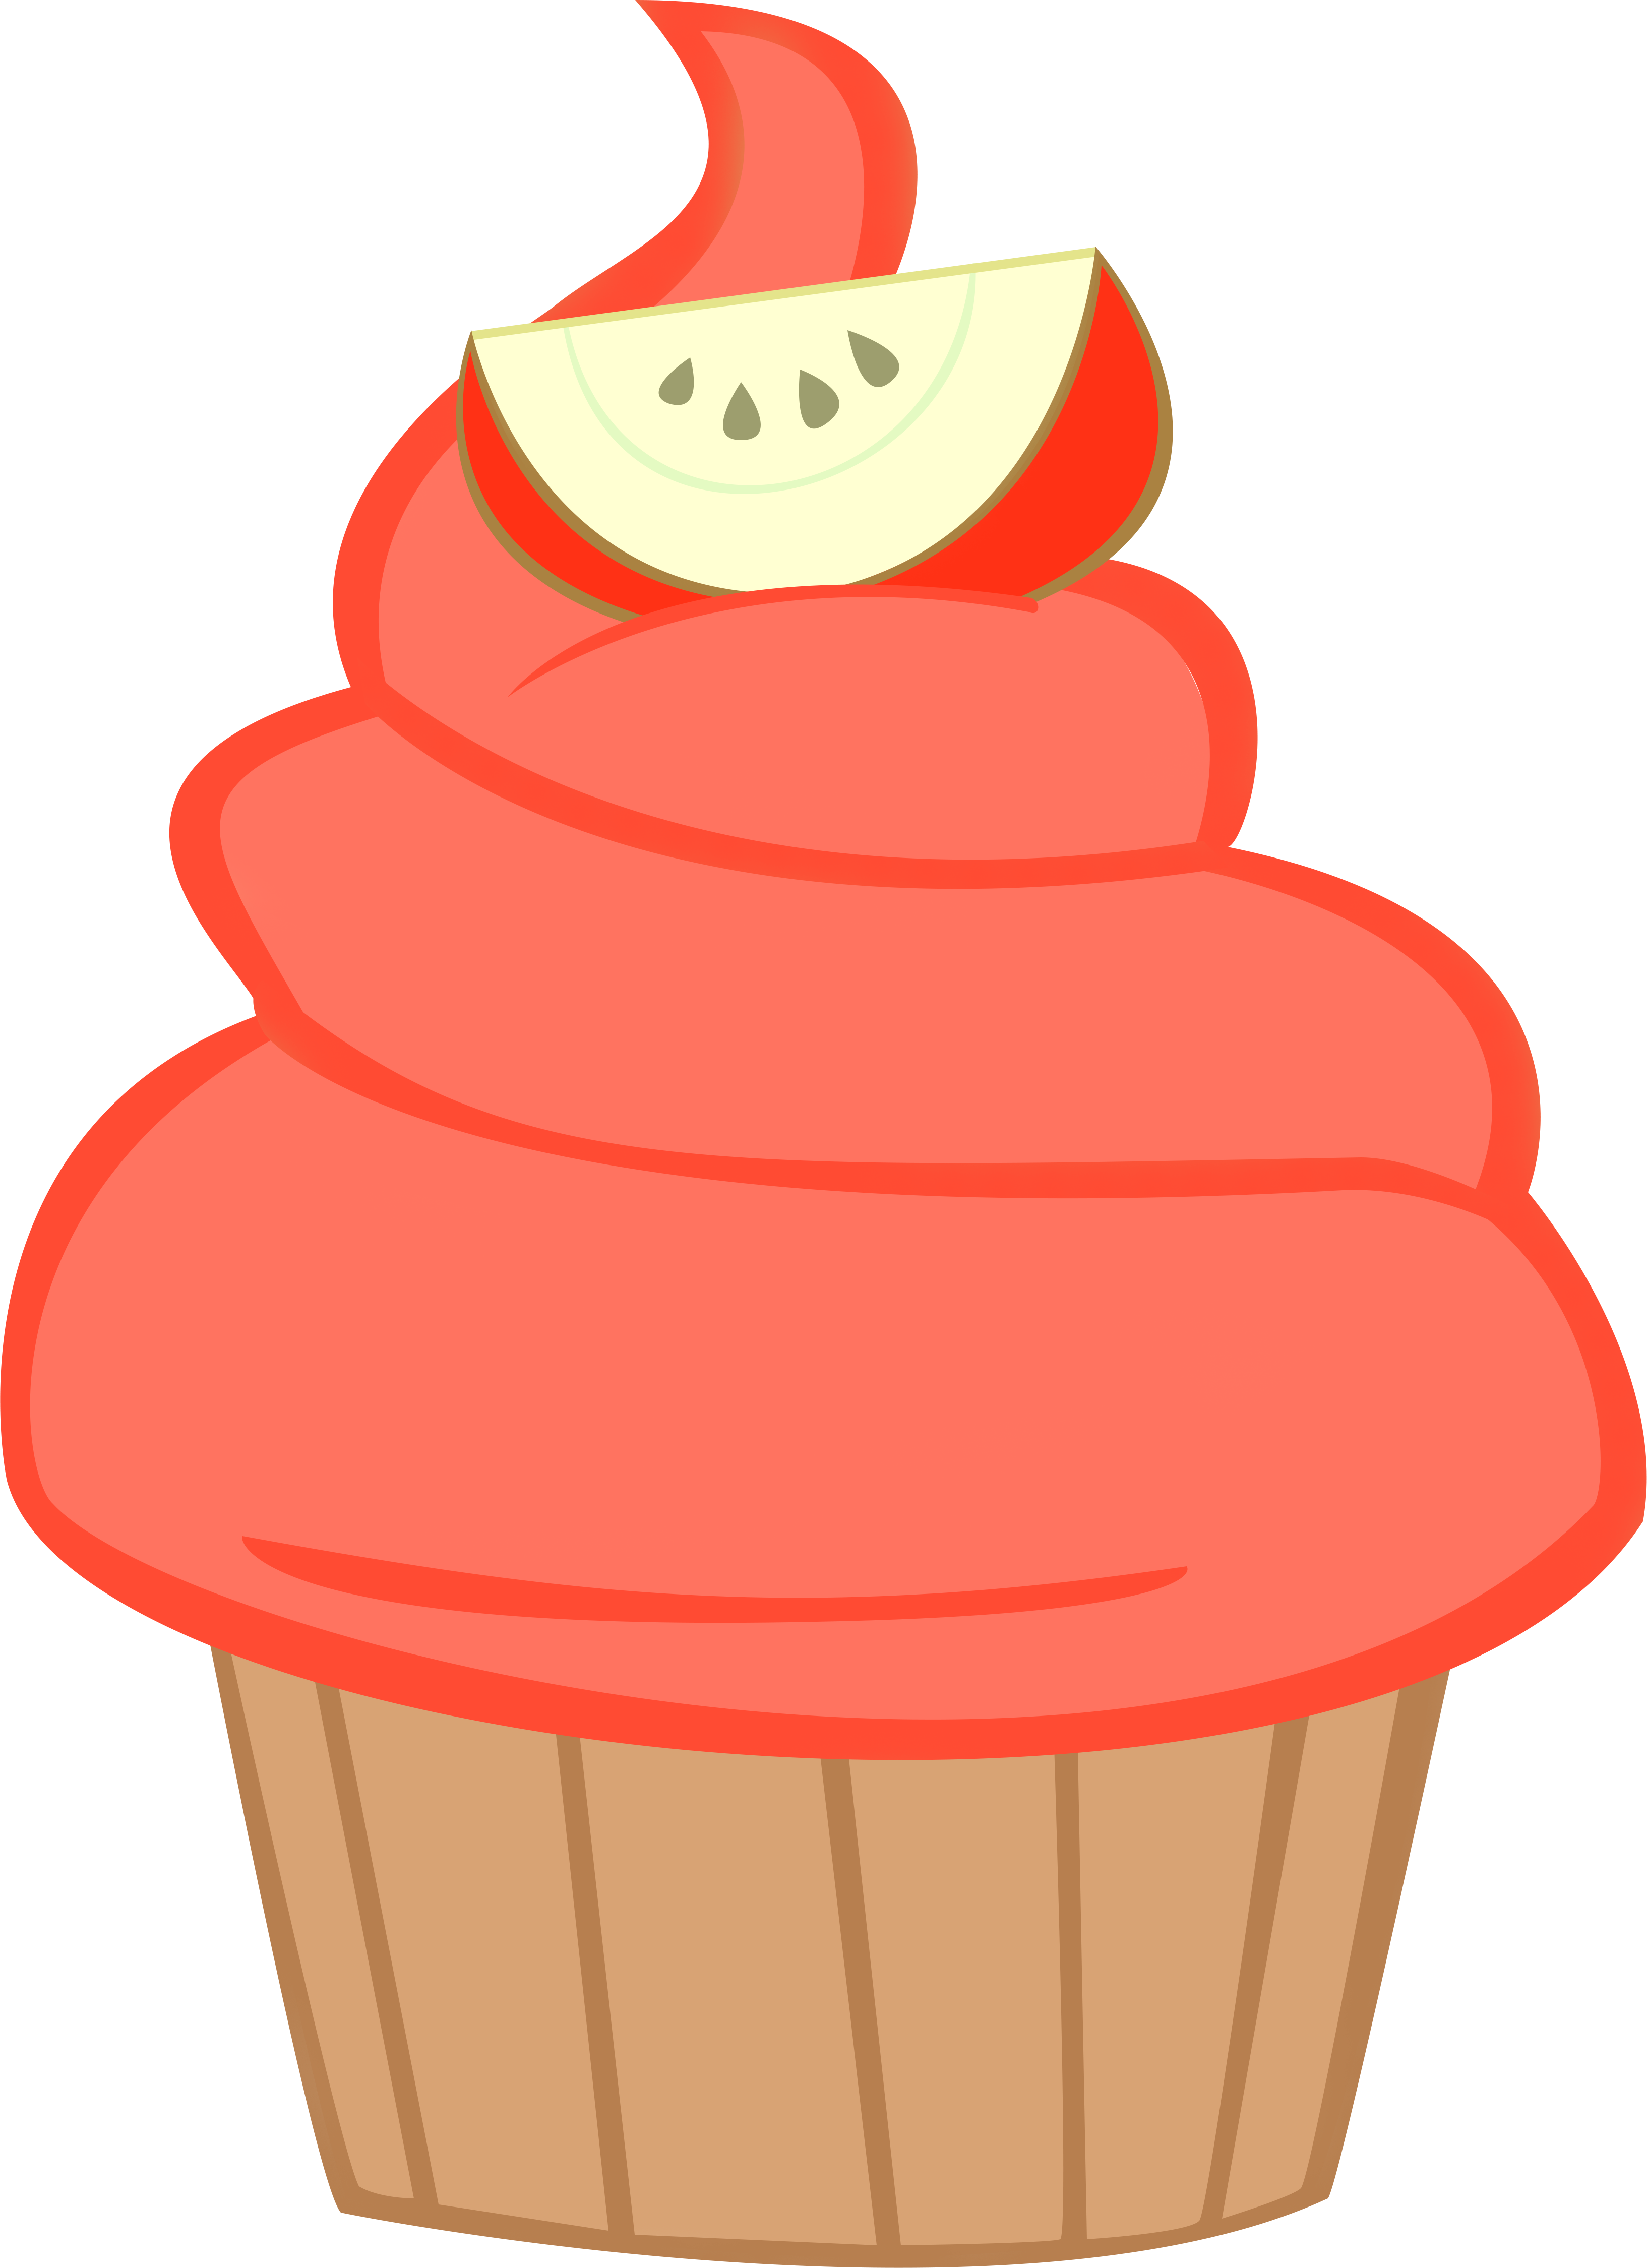 Cupcake vector png. Image result for mlp